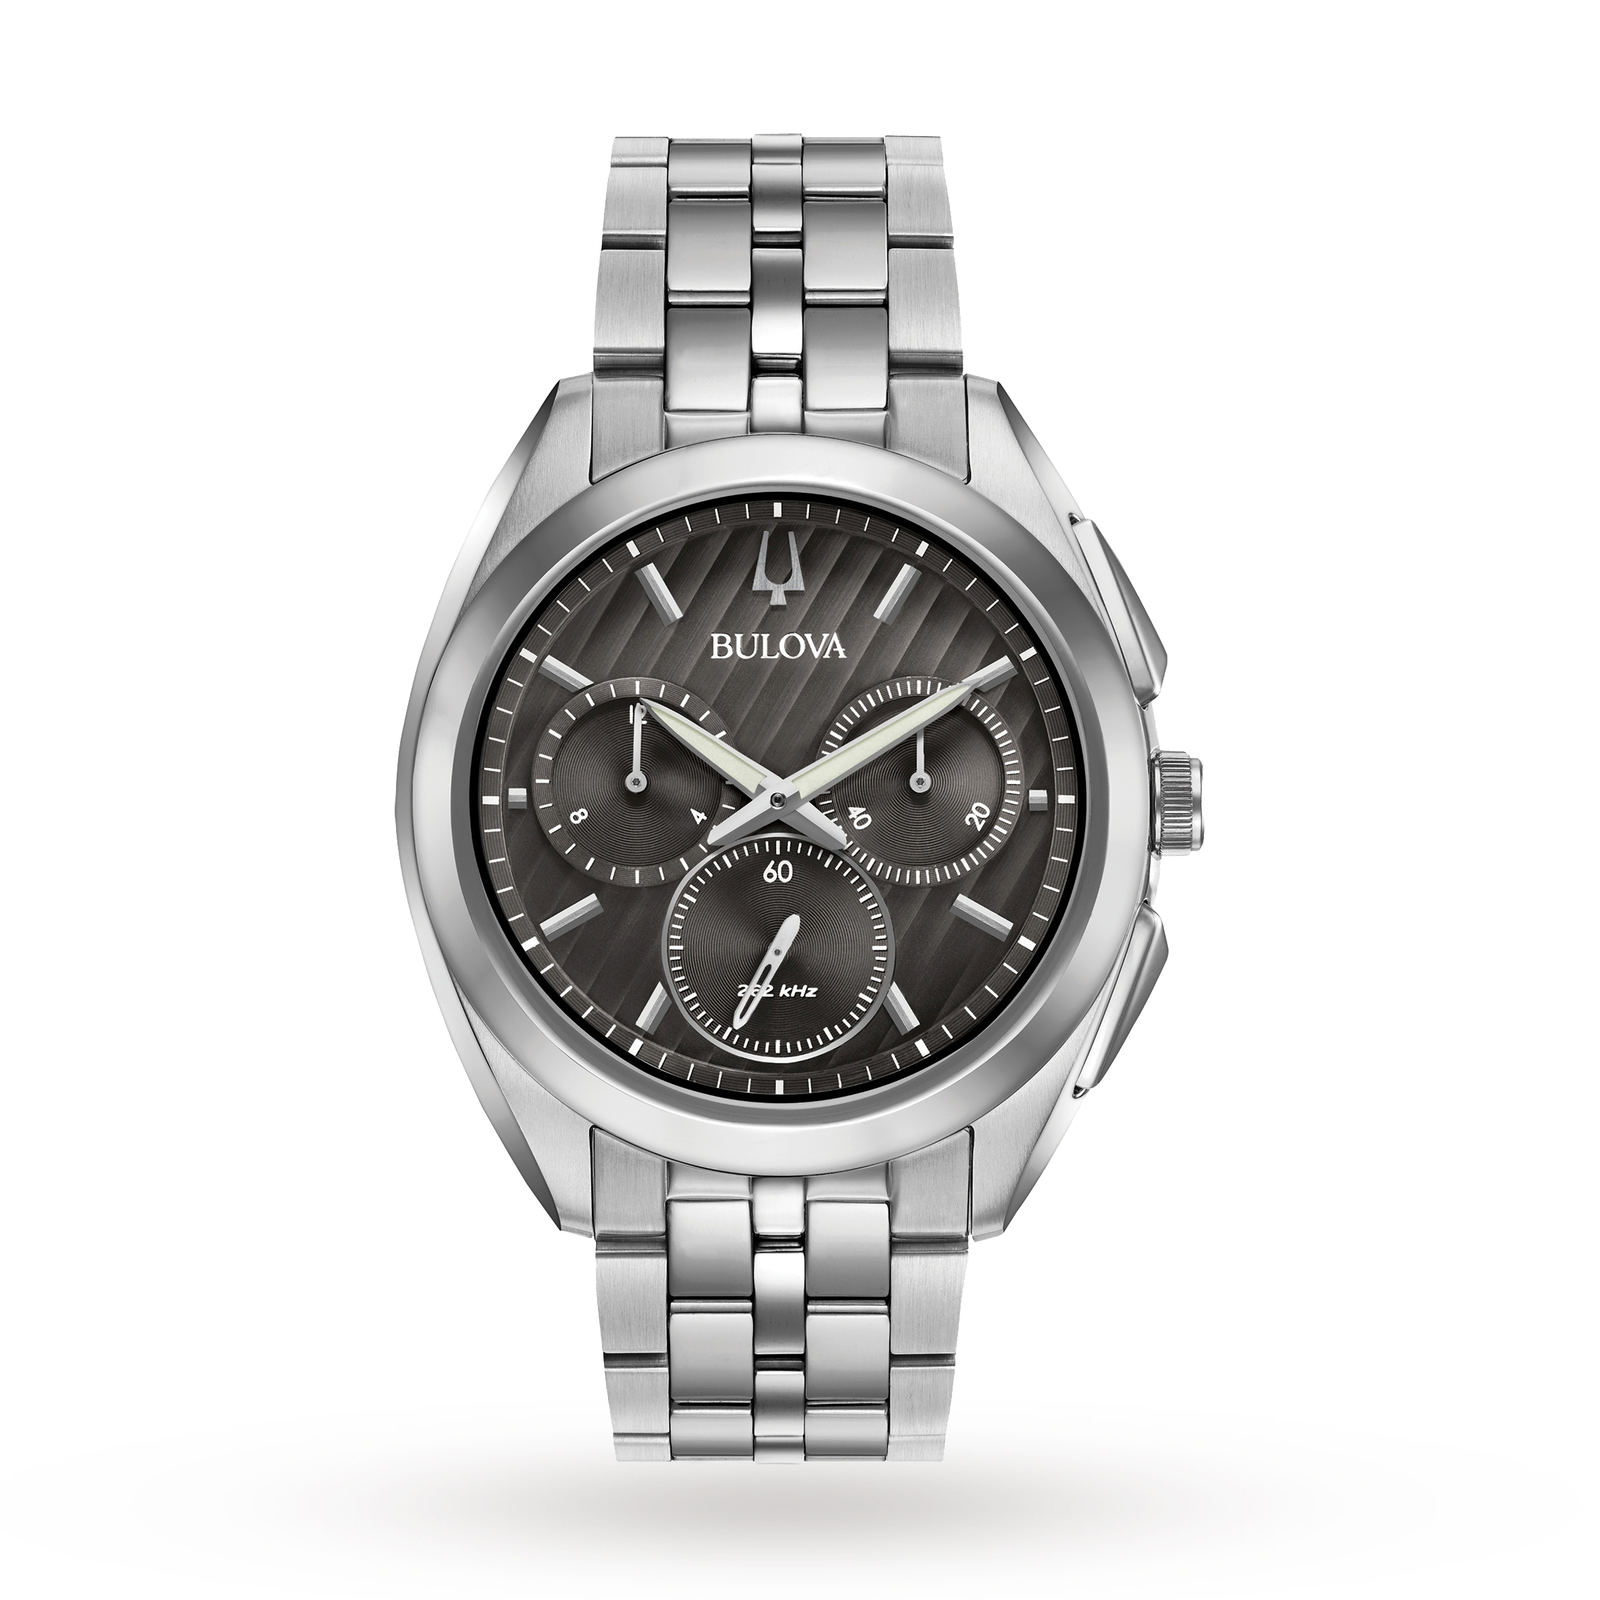 Bulova Men's Progressive Dress CURV Chronograph Watch